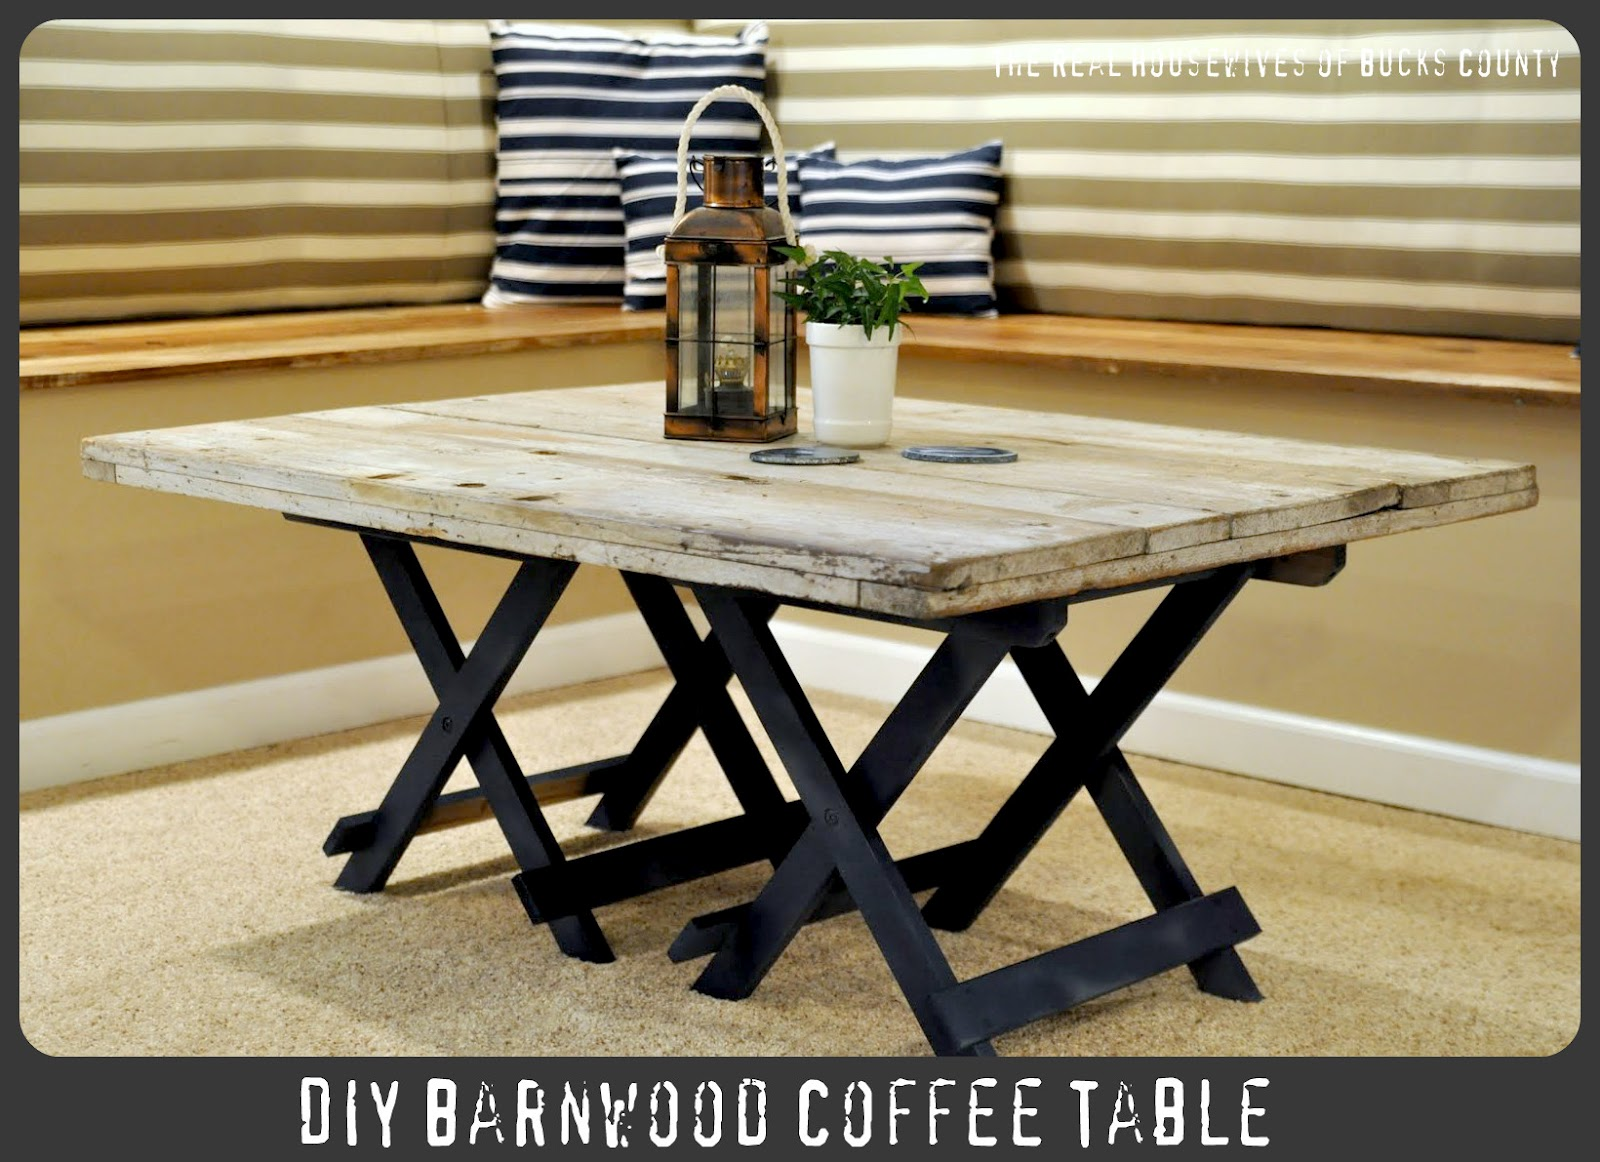 11 diy wood pallet ideas to make space in your apartment upcycle wood pallets into a diy coffee table geotapseo Image collections